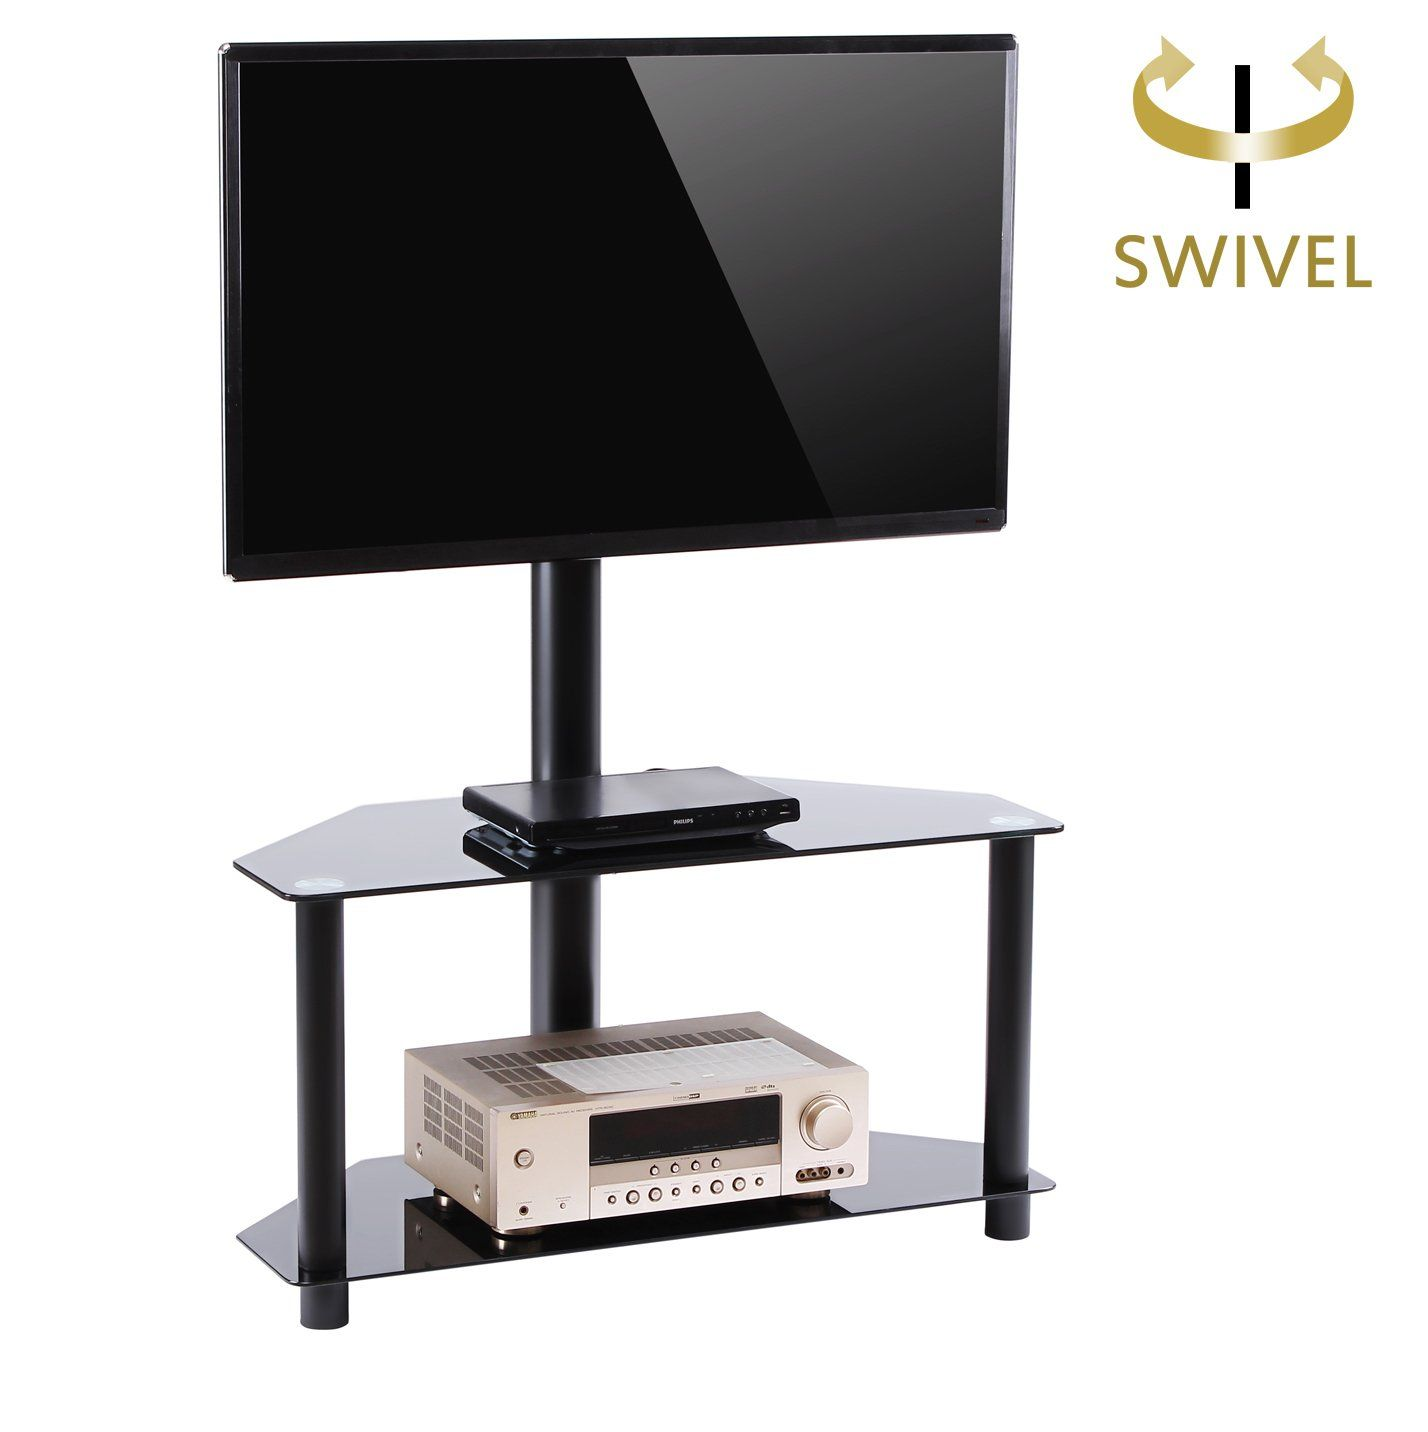 Rfiver Black Corner Floor Tv Stand With Swivel Mount Bracket For 32 37 42 47 50 55 Inches Plasma Lcd Tv Stand With Swivel Mount Tv Stand Tempered Glass Shelves 55 tv stand with mount